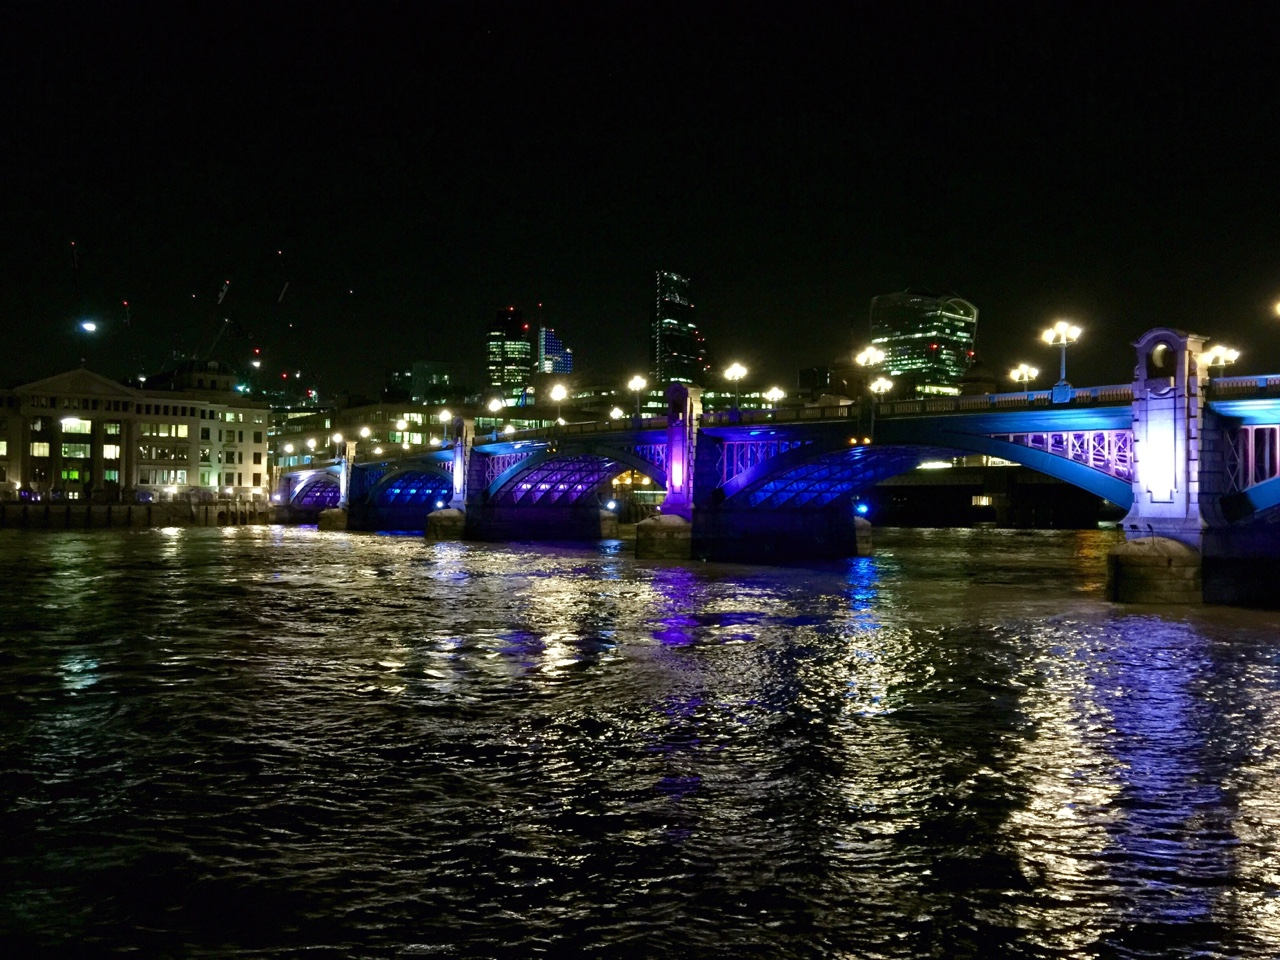 London Cityscape from the Thames at Night - London, United Kingdom    After leaving the globe, there was a charity moonlight walk happening along the Thames. I walked alongside a few fellow travelers for a few miles before turning off to take the underground back for some much needed rest. London glitters at night, and the reflections cast along the riverside make it unlike any other city that I have ever been to. This is the first time in my life that I have ever wanted the sun to set earlier so I can experience it again.